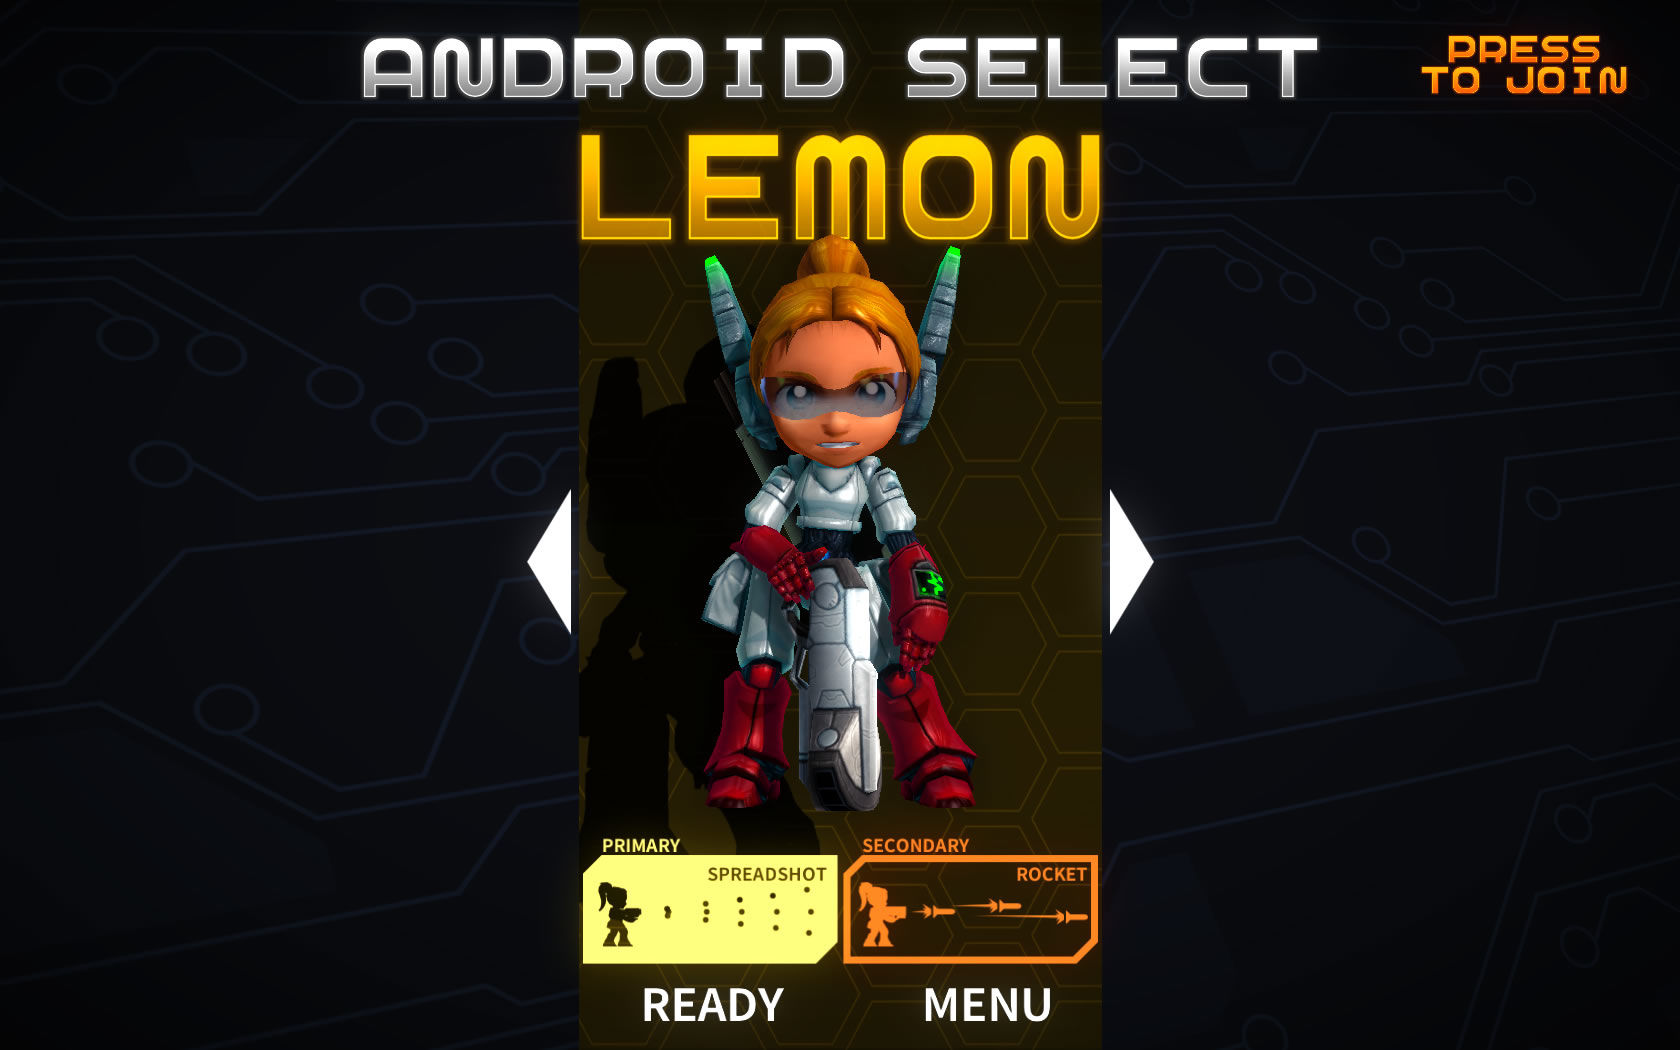 Assault Android Cactus Windows Android selection screen